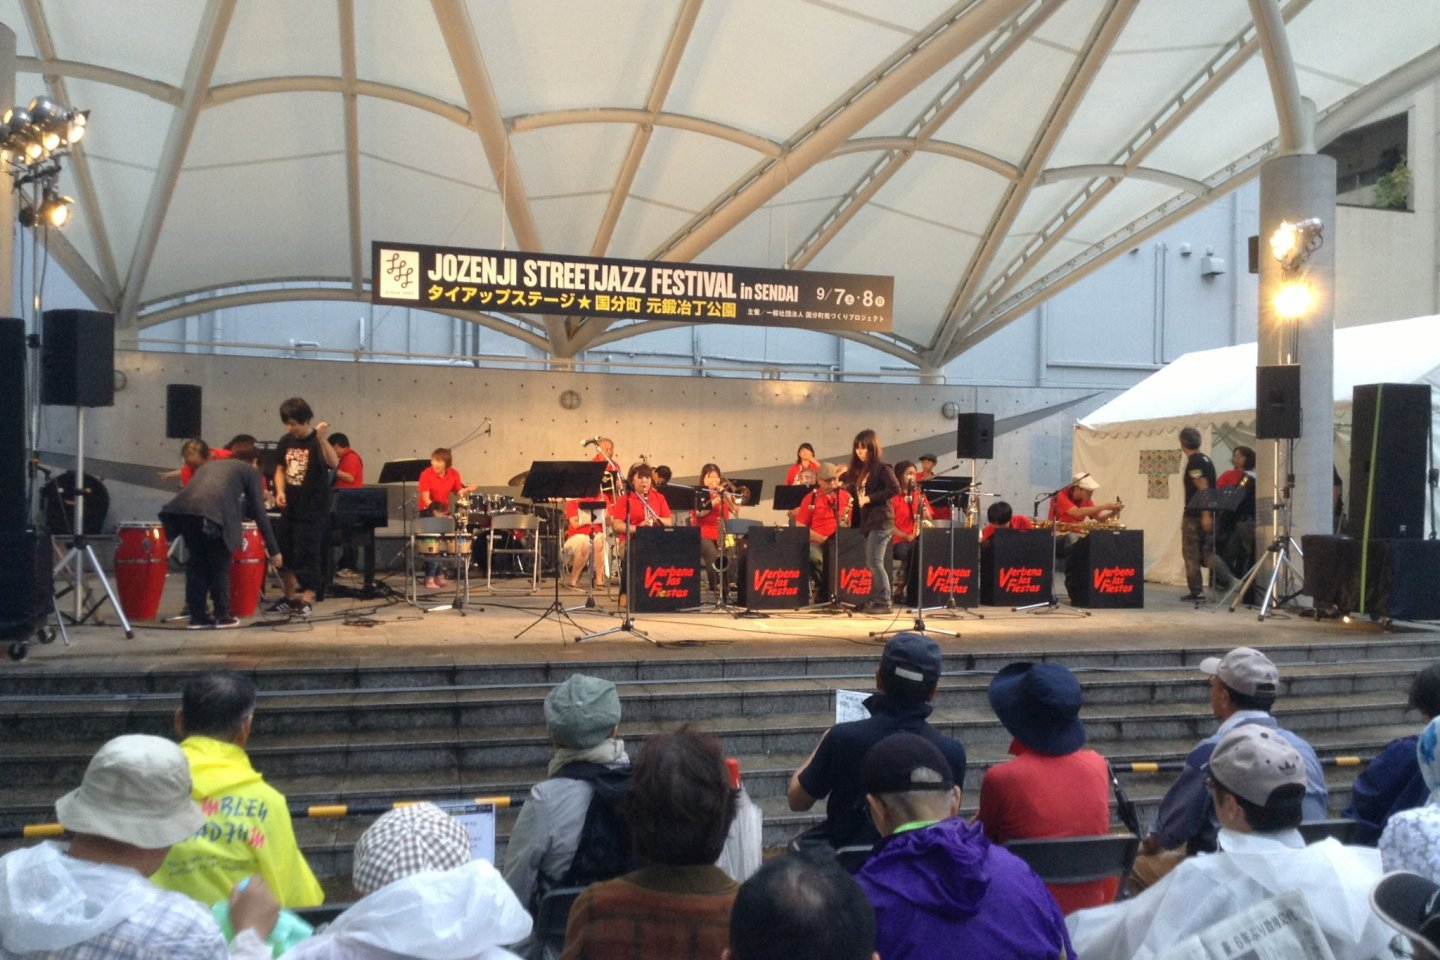 Get up close to the big stage at Jozenji Street Jazz Festival Sendai